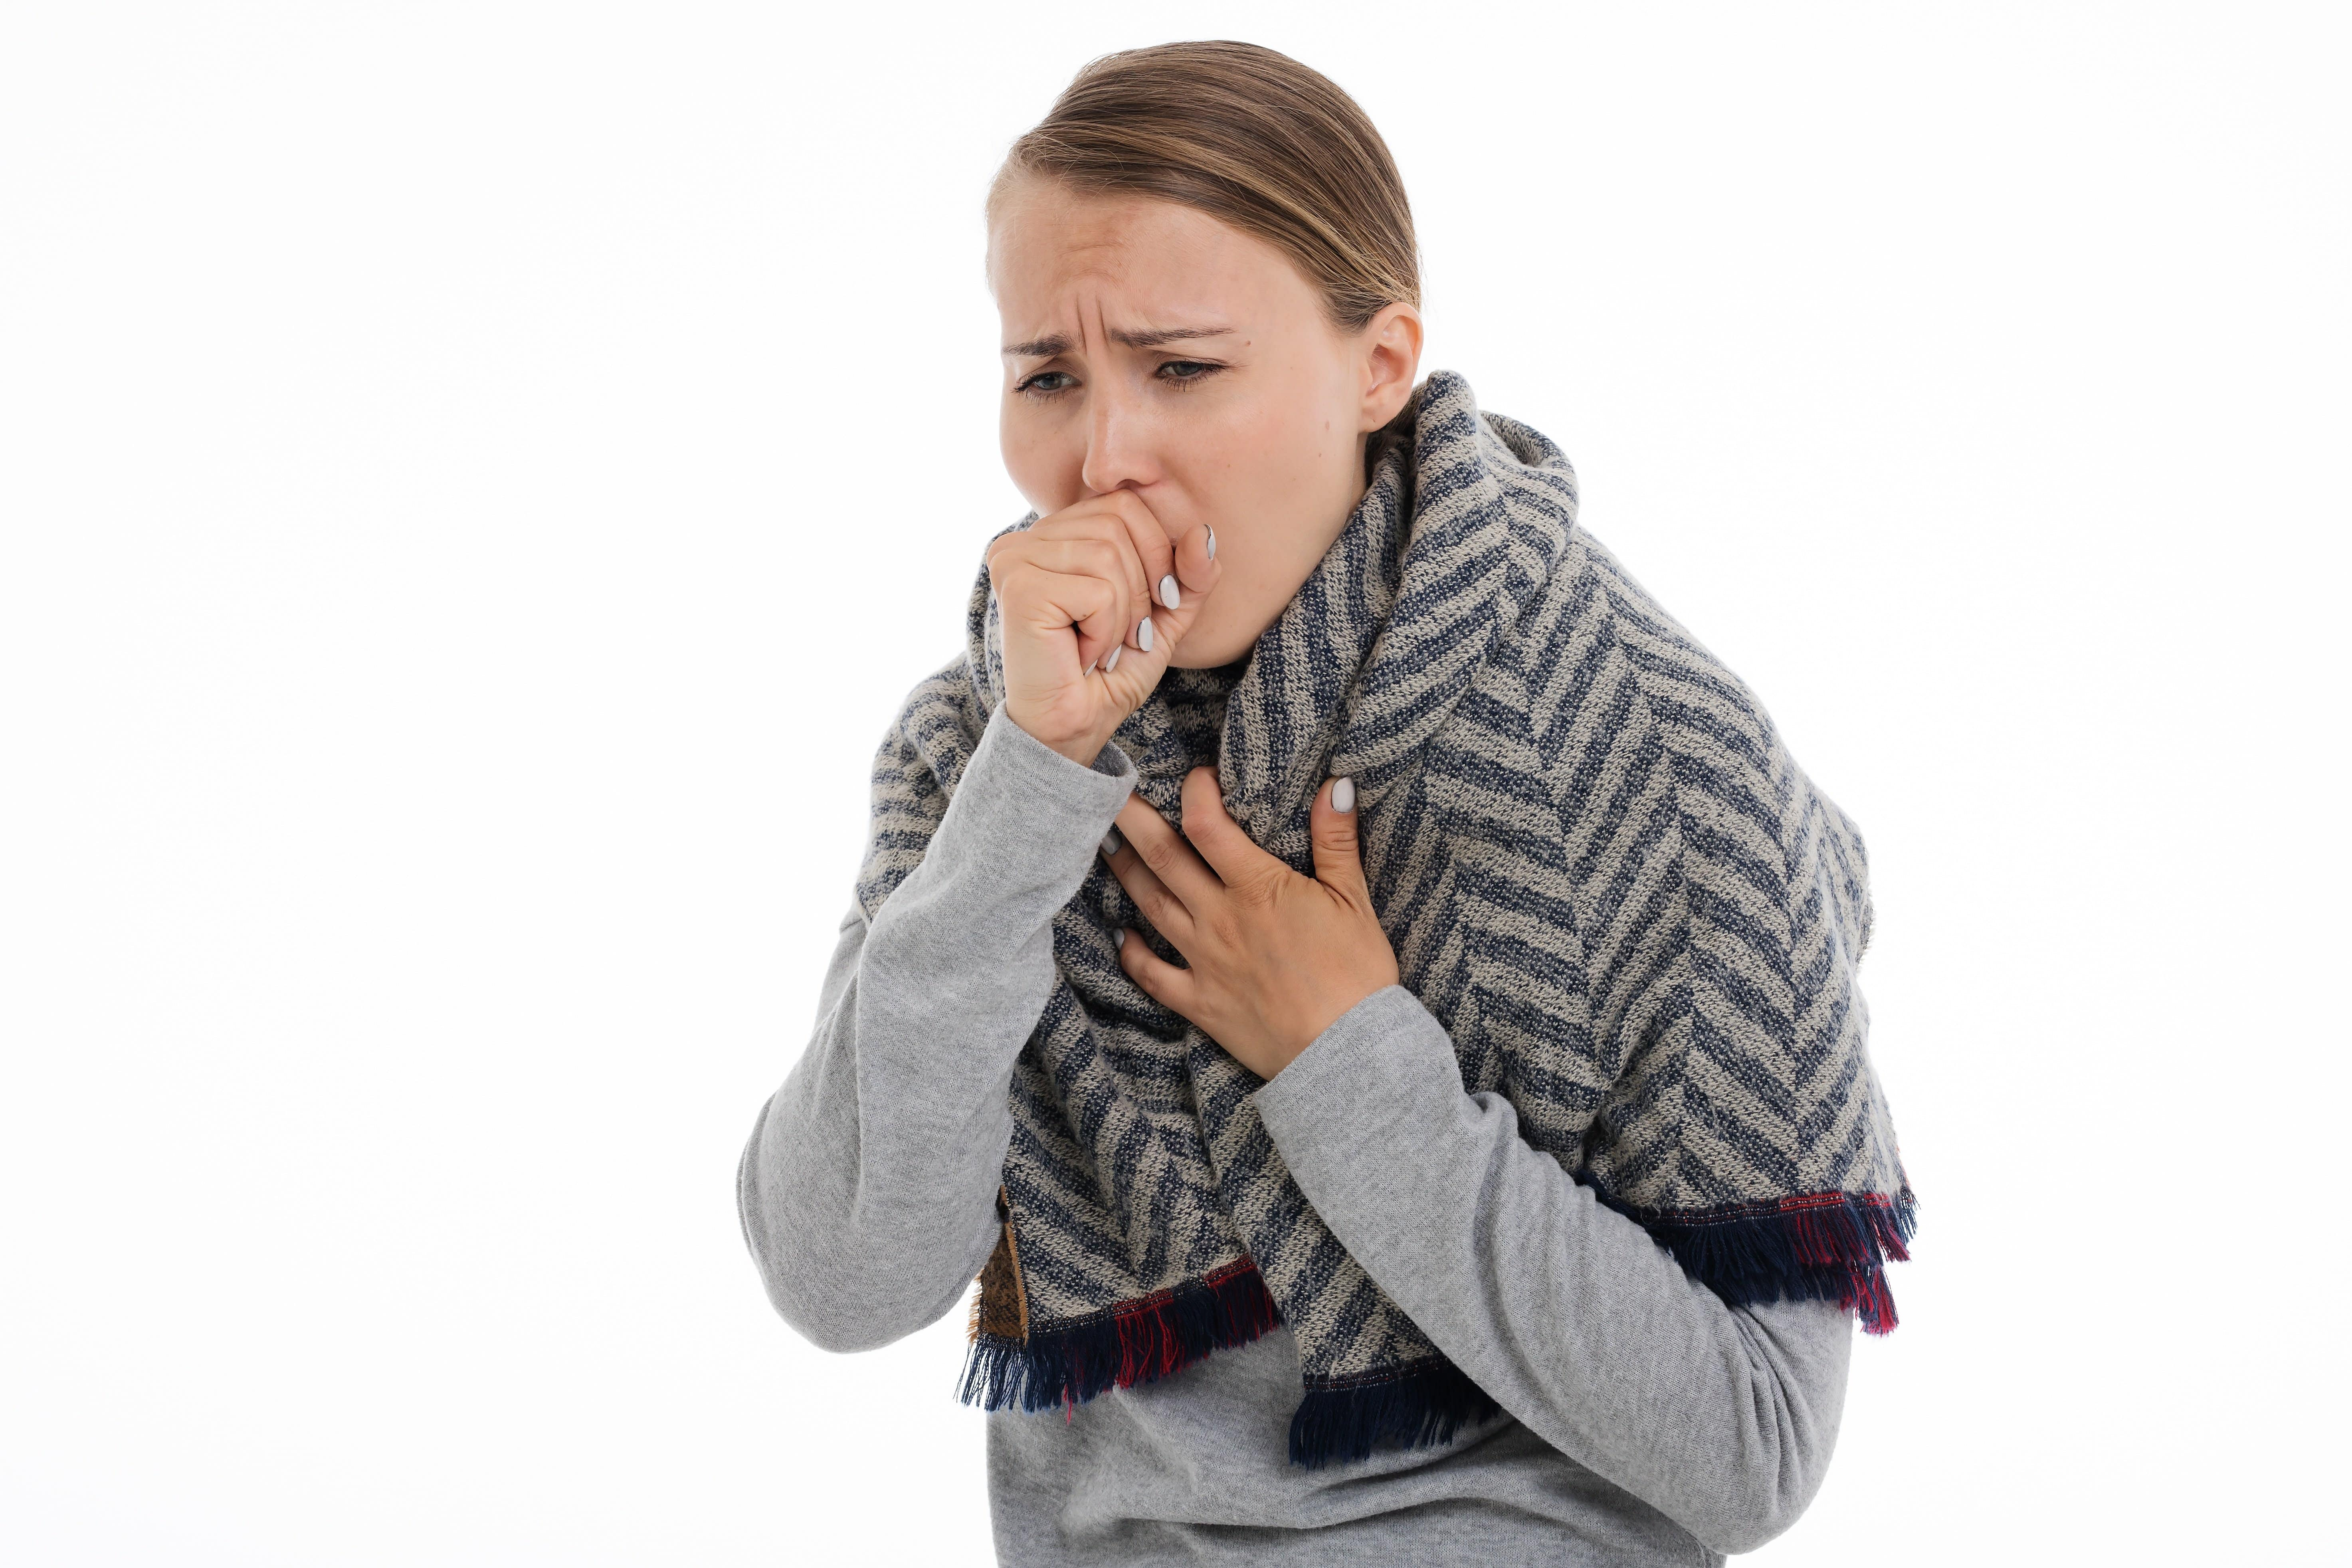 Image of woman coughing. Hyfe - Saves clinical researchers valuable time